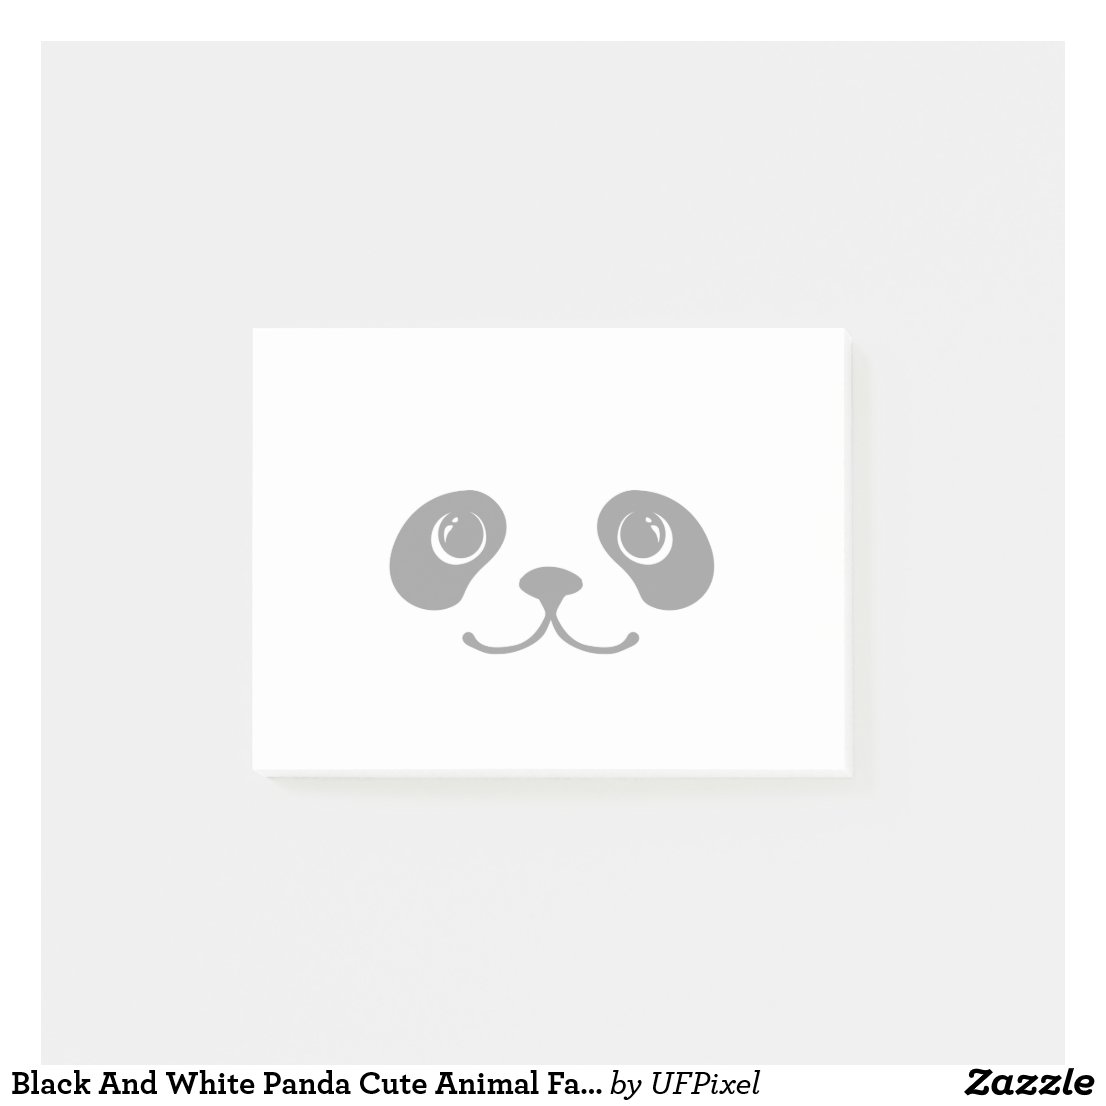 Black And White Panda Cute Animal Face Design Post-it Notes